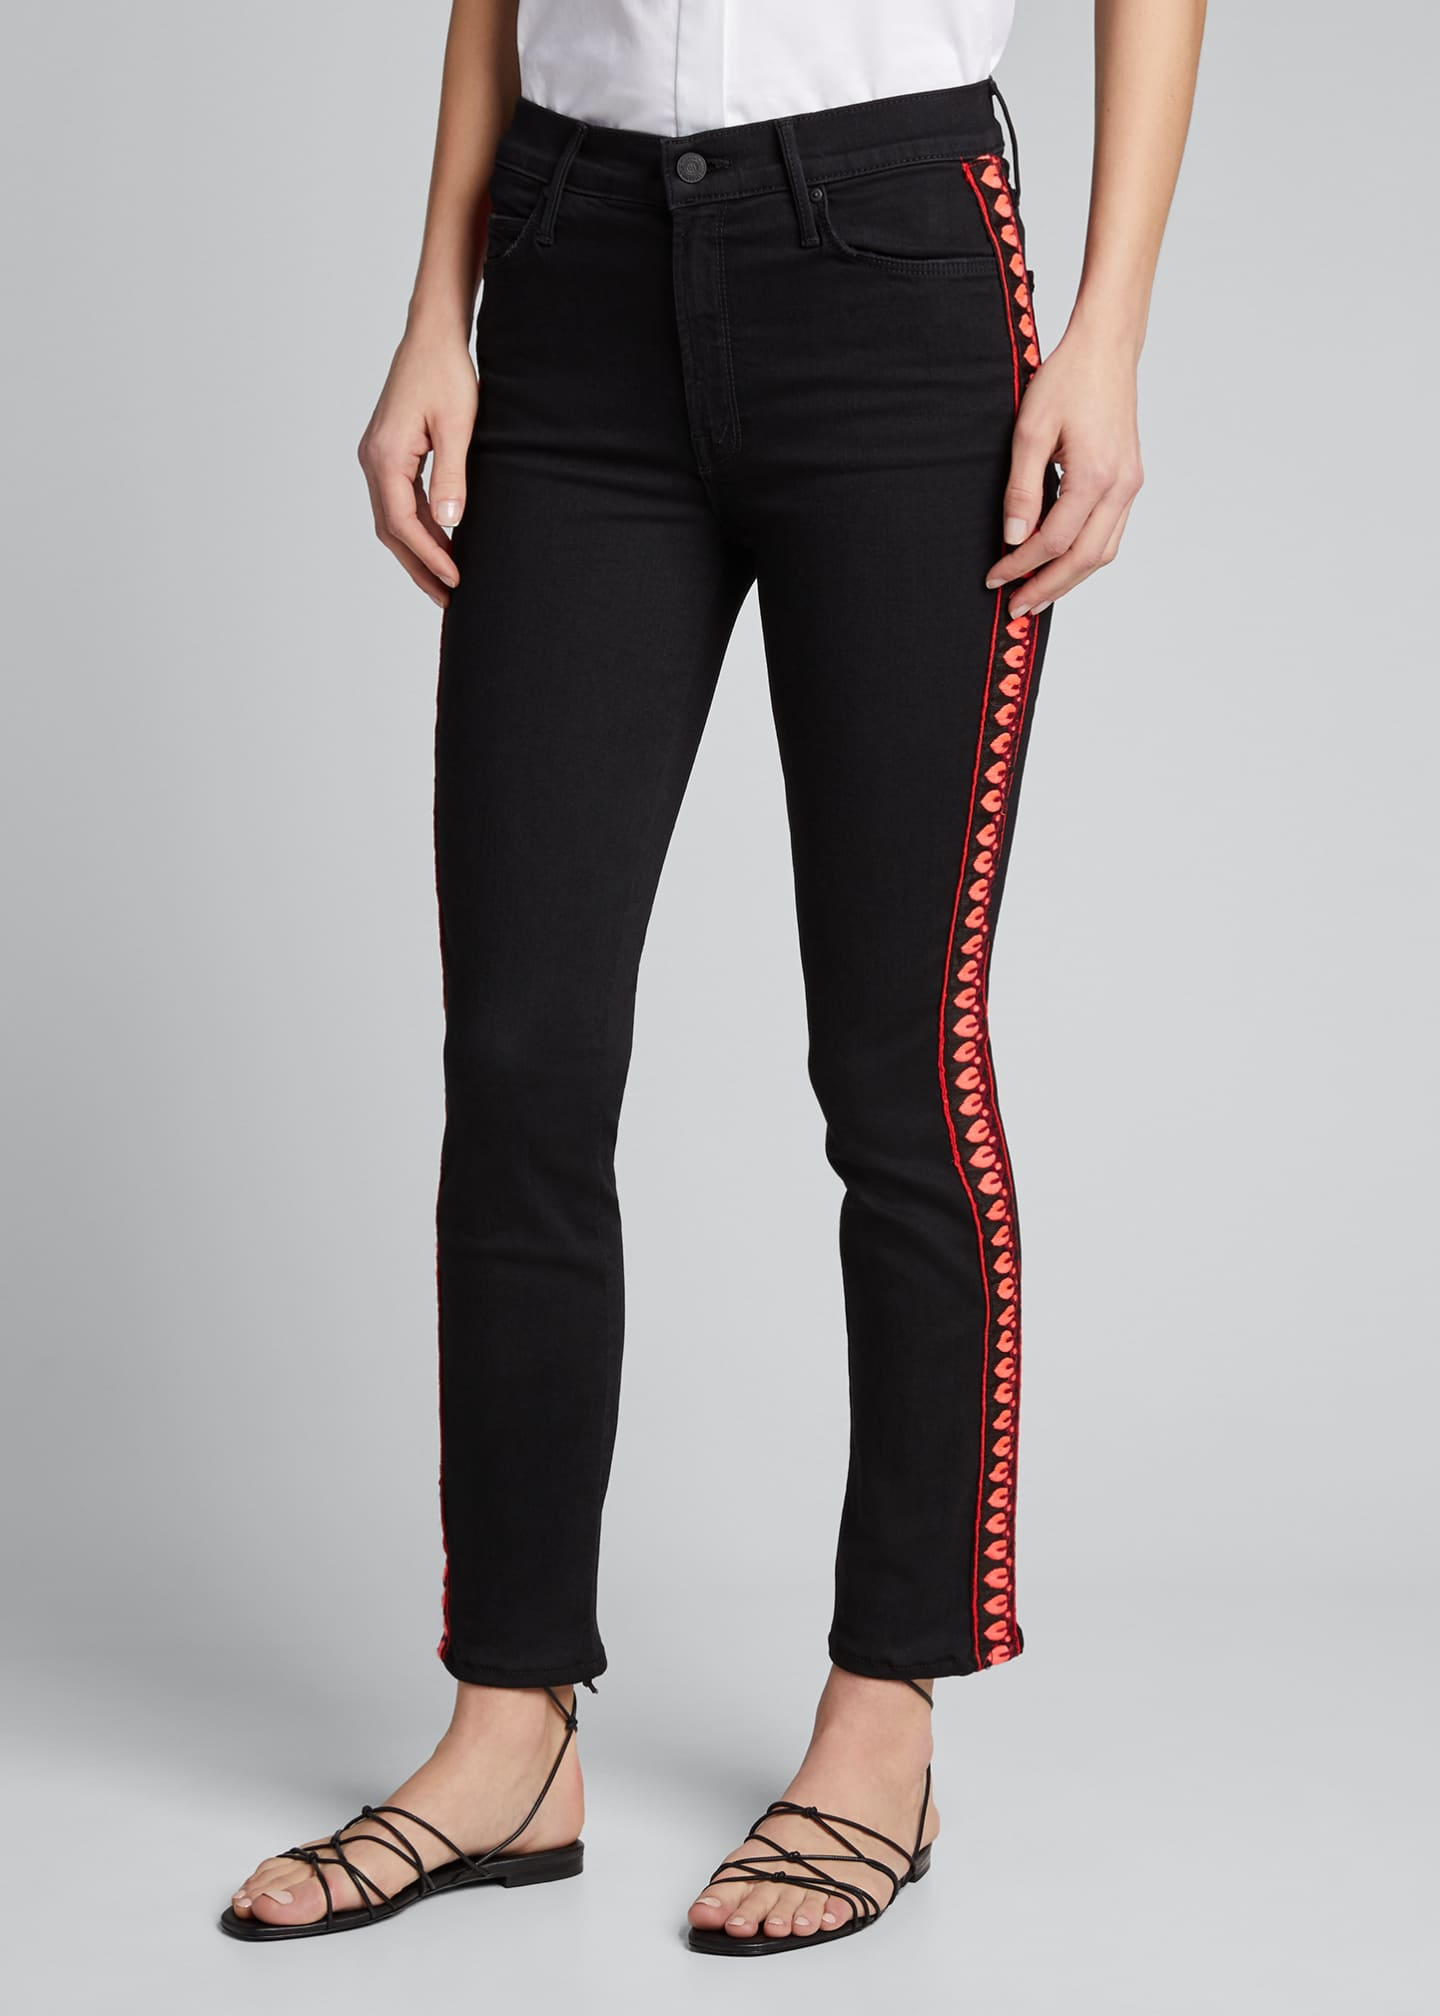 Image 3 of 5: The Mid-Rise Dazzler Ankle Jeans